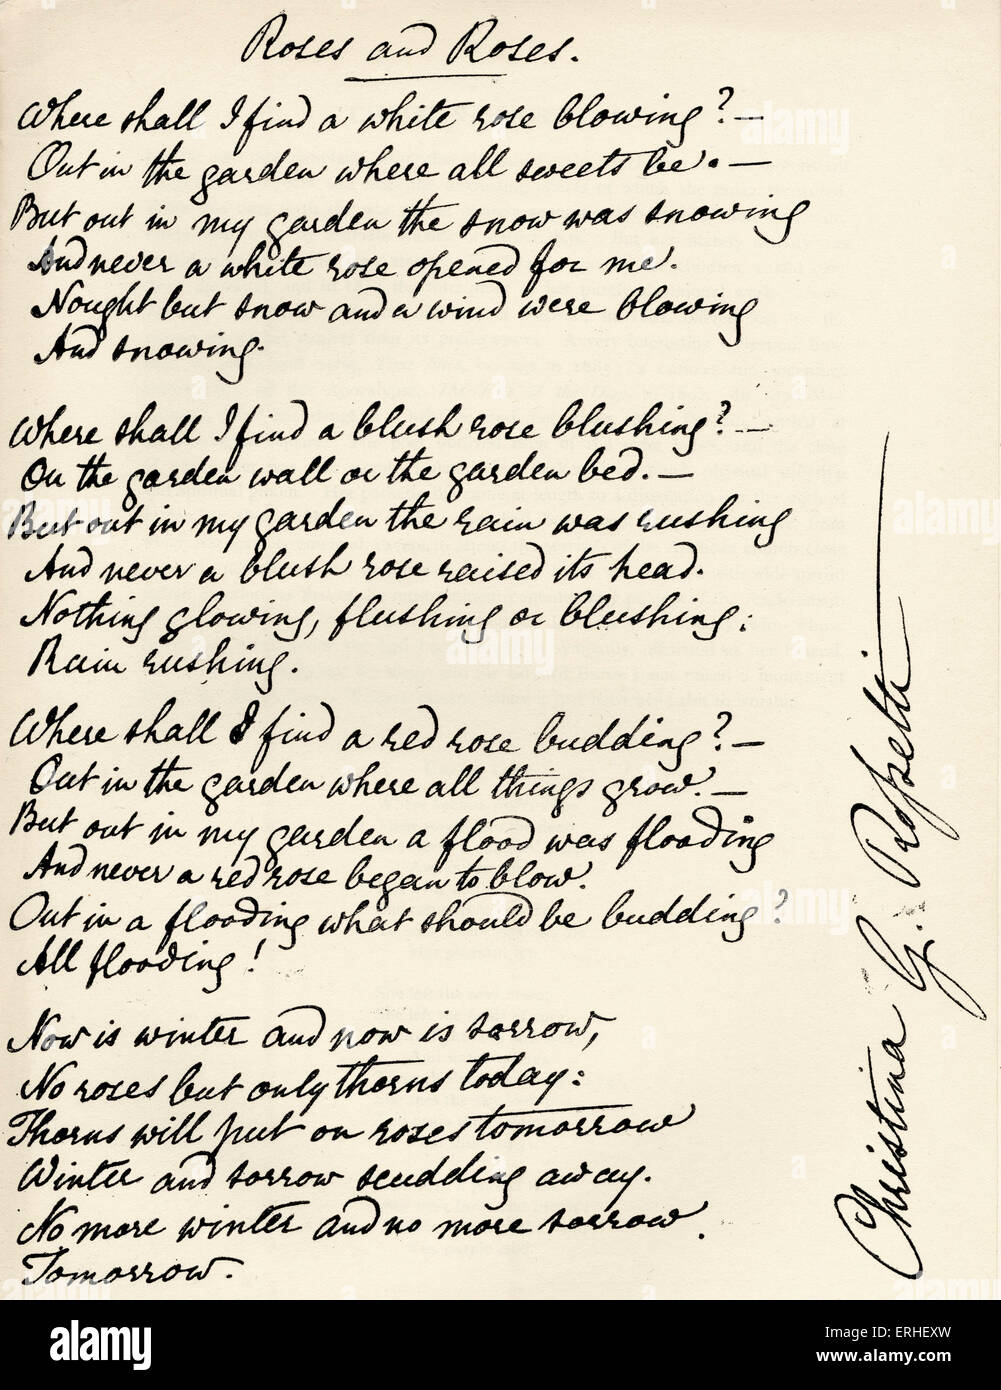 Christina Rossetti - Signed manuscript of poem ' Roses and Roses ' by the English poet 1830-94. - Stock Image